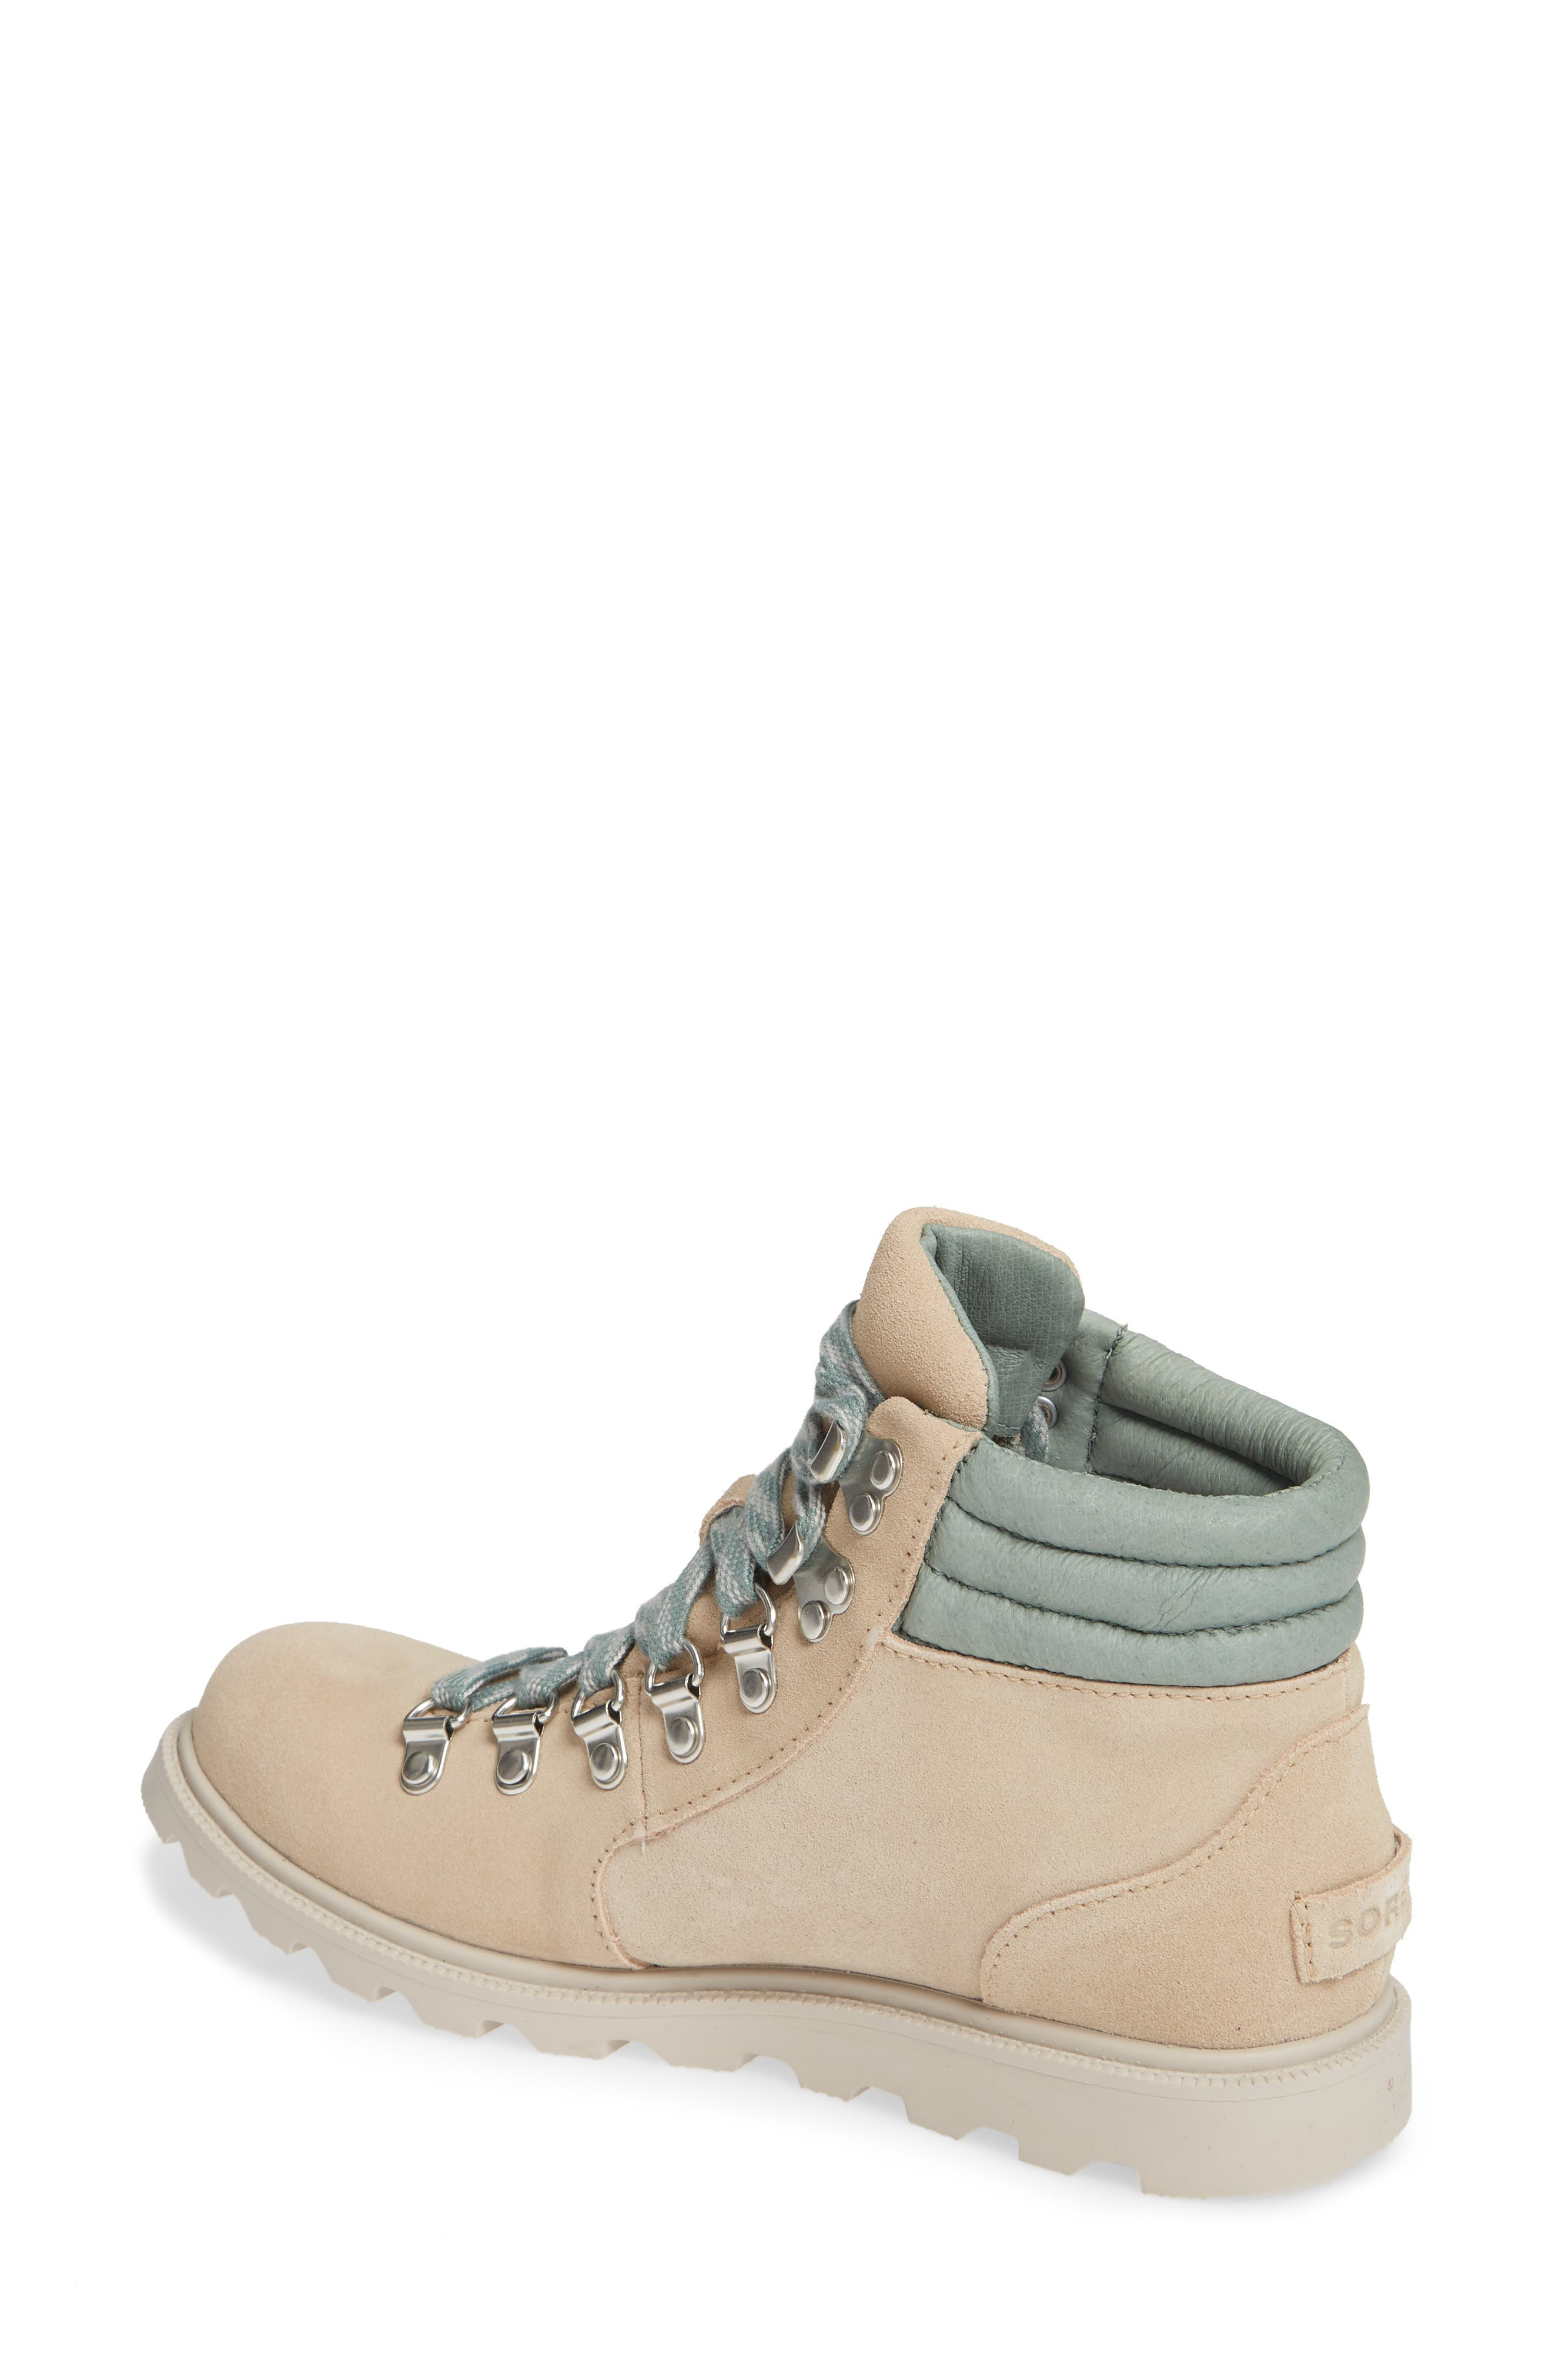 Ainsley Conquest Waterproof Boot,                             Alternate thumbnail 2, color,                             OATMEAL